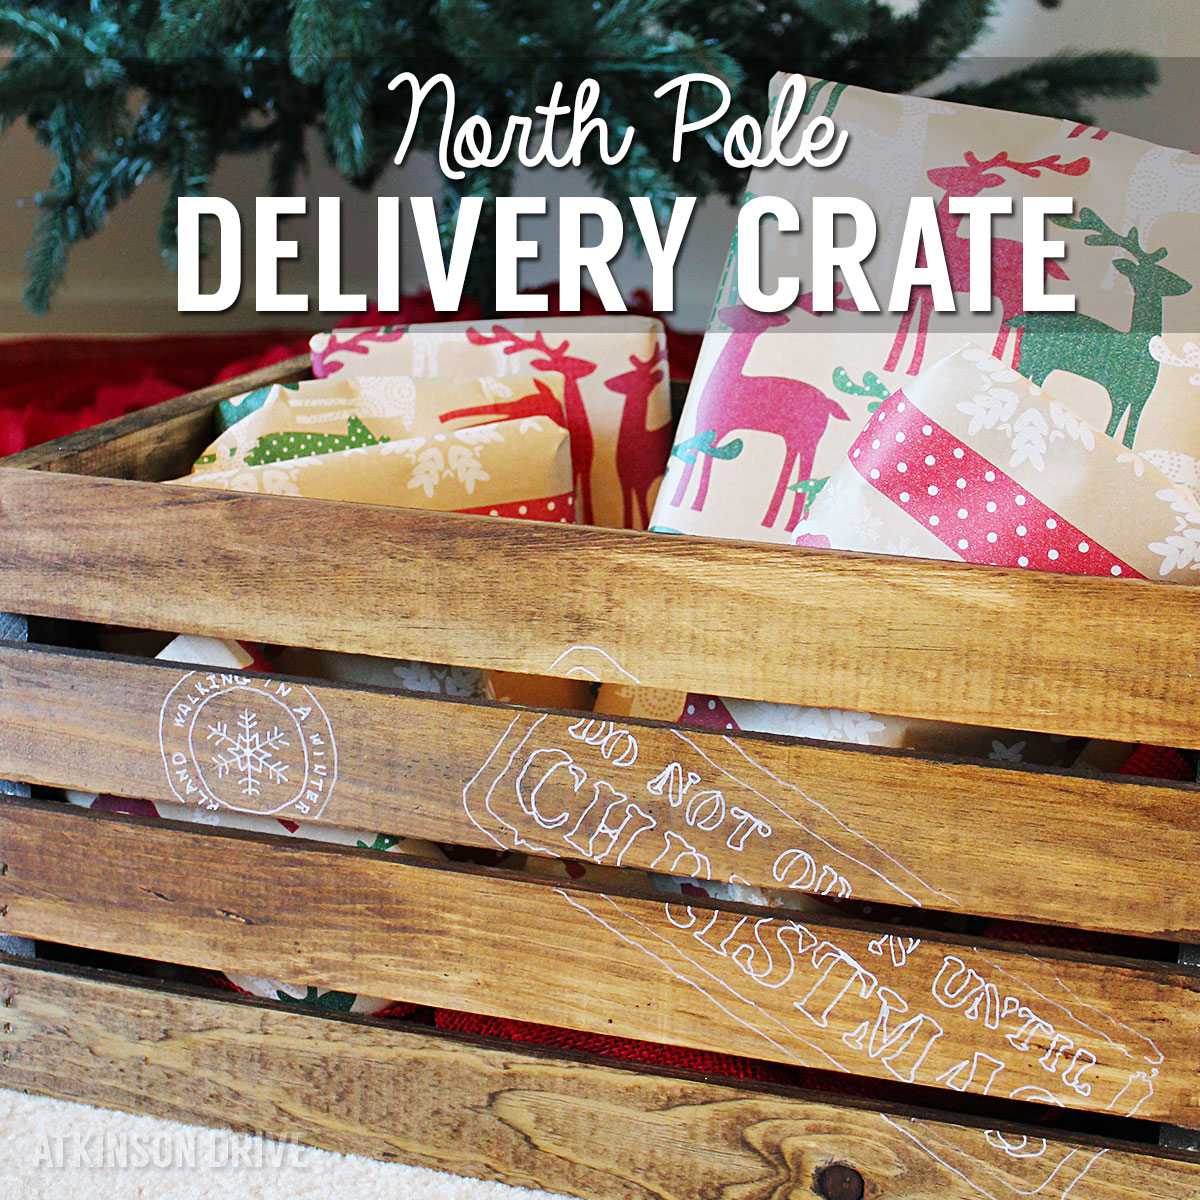 North Pole Christmas Gift Delivery Crate | Atkinson Drive